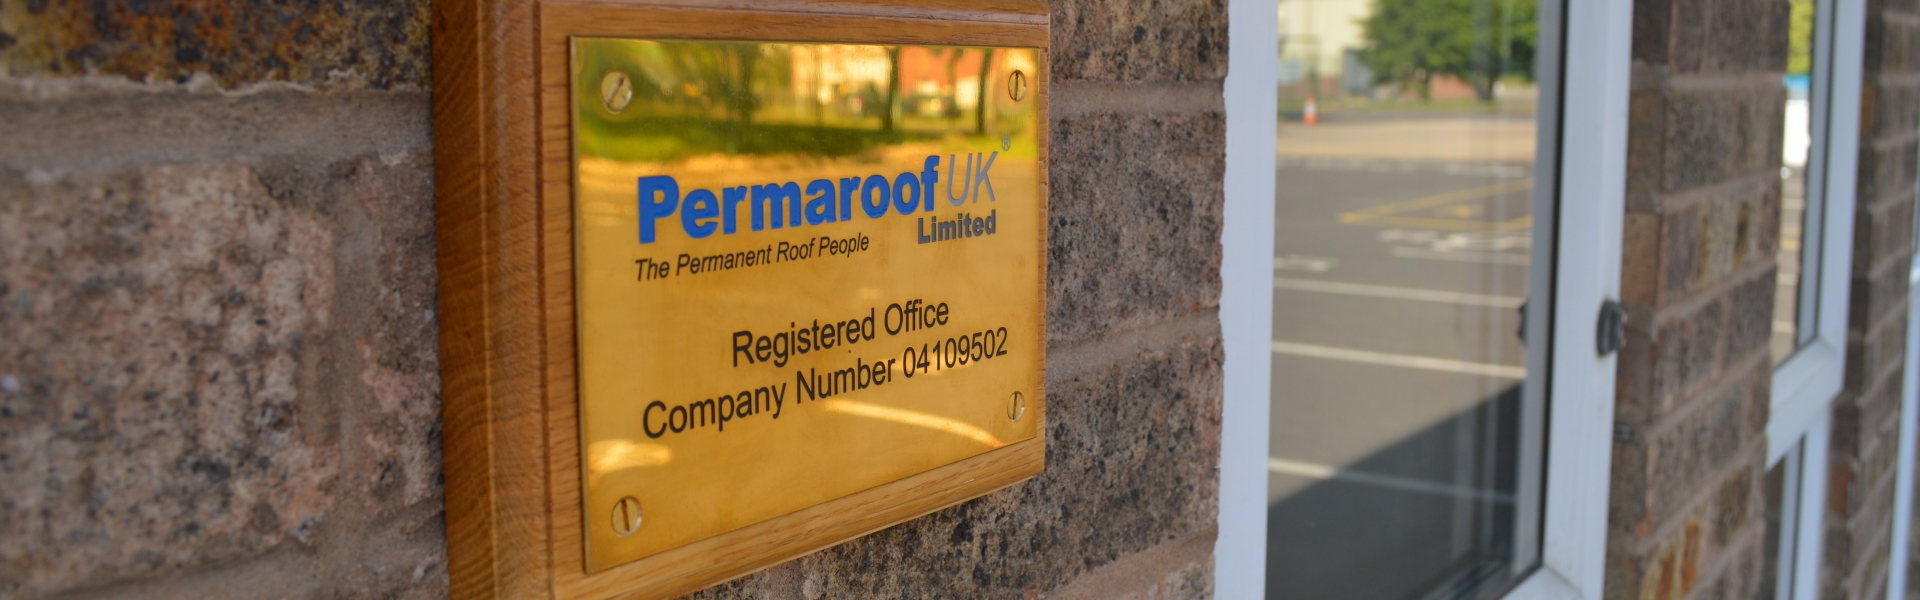 PermaroofUK Ltd. Flat Roofing Supplies